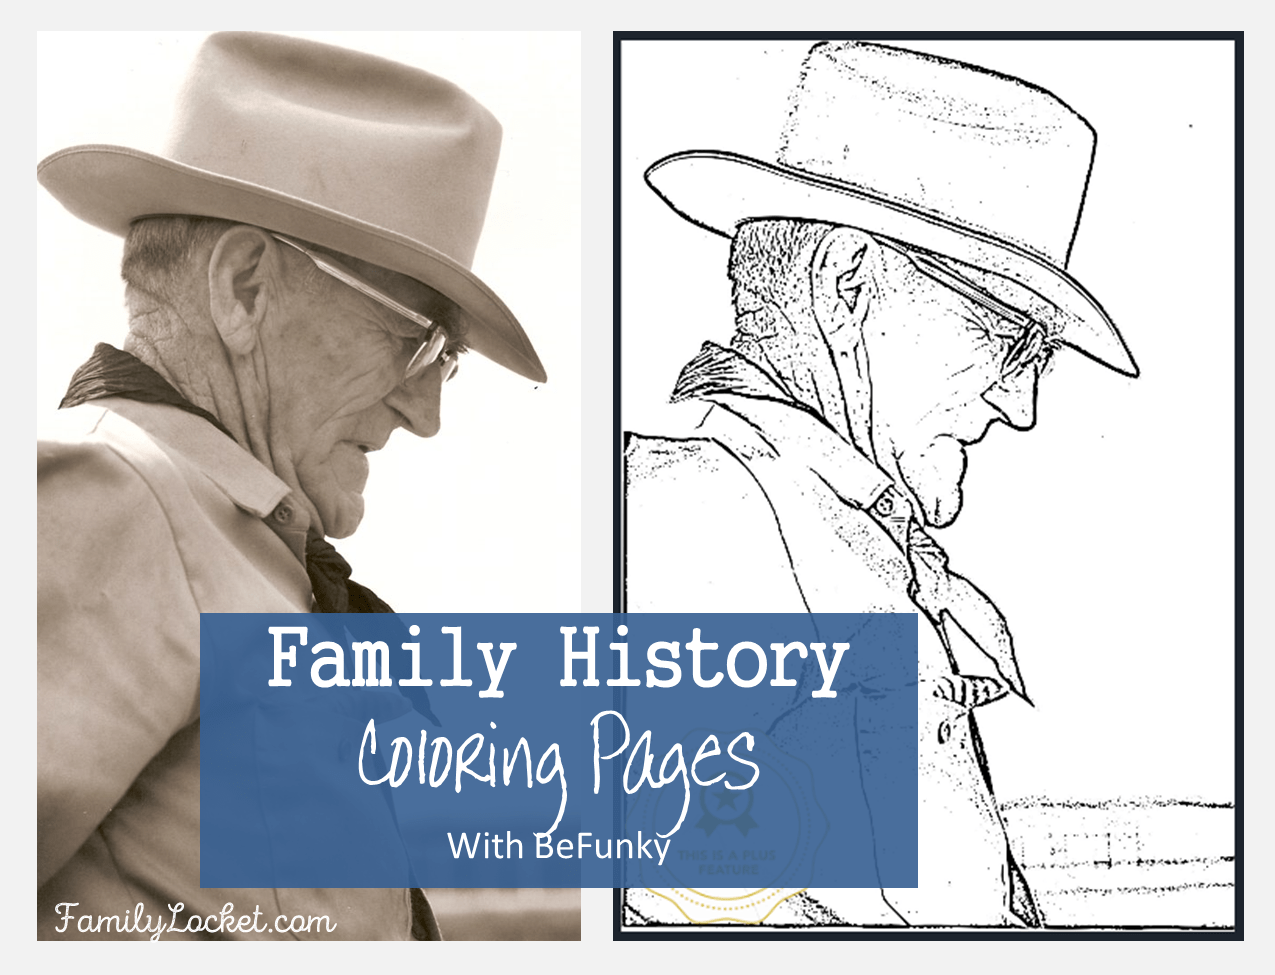 Creating Family Photo Coloring Pages with BeFunky